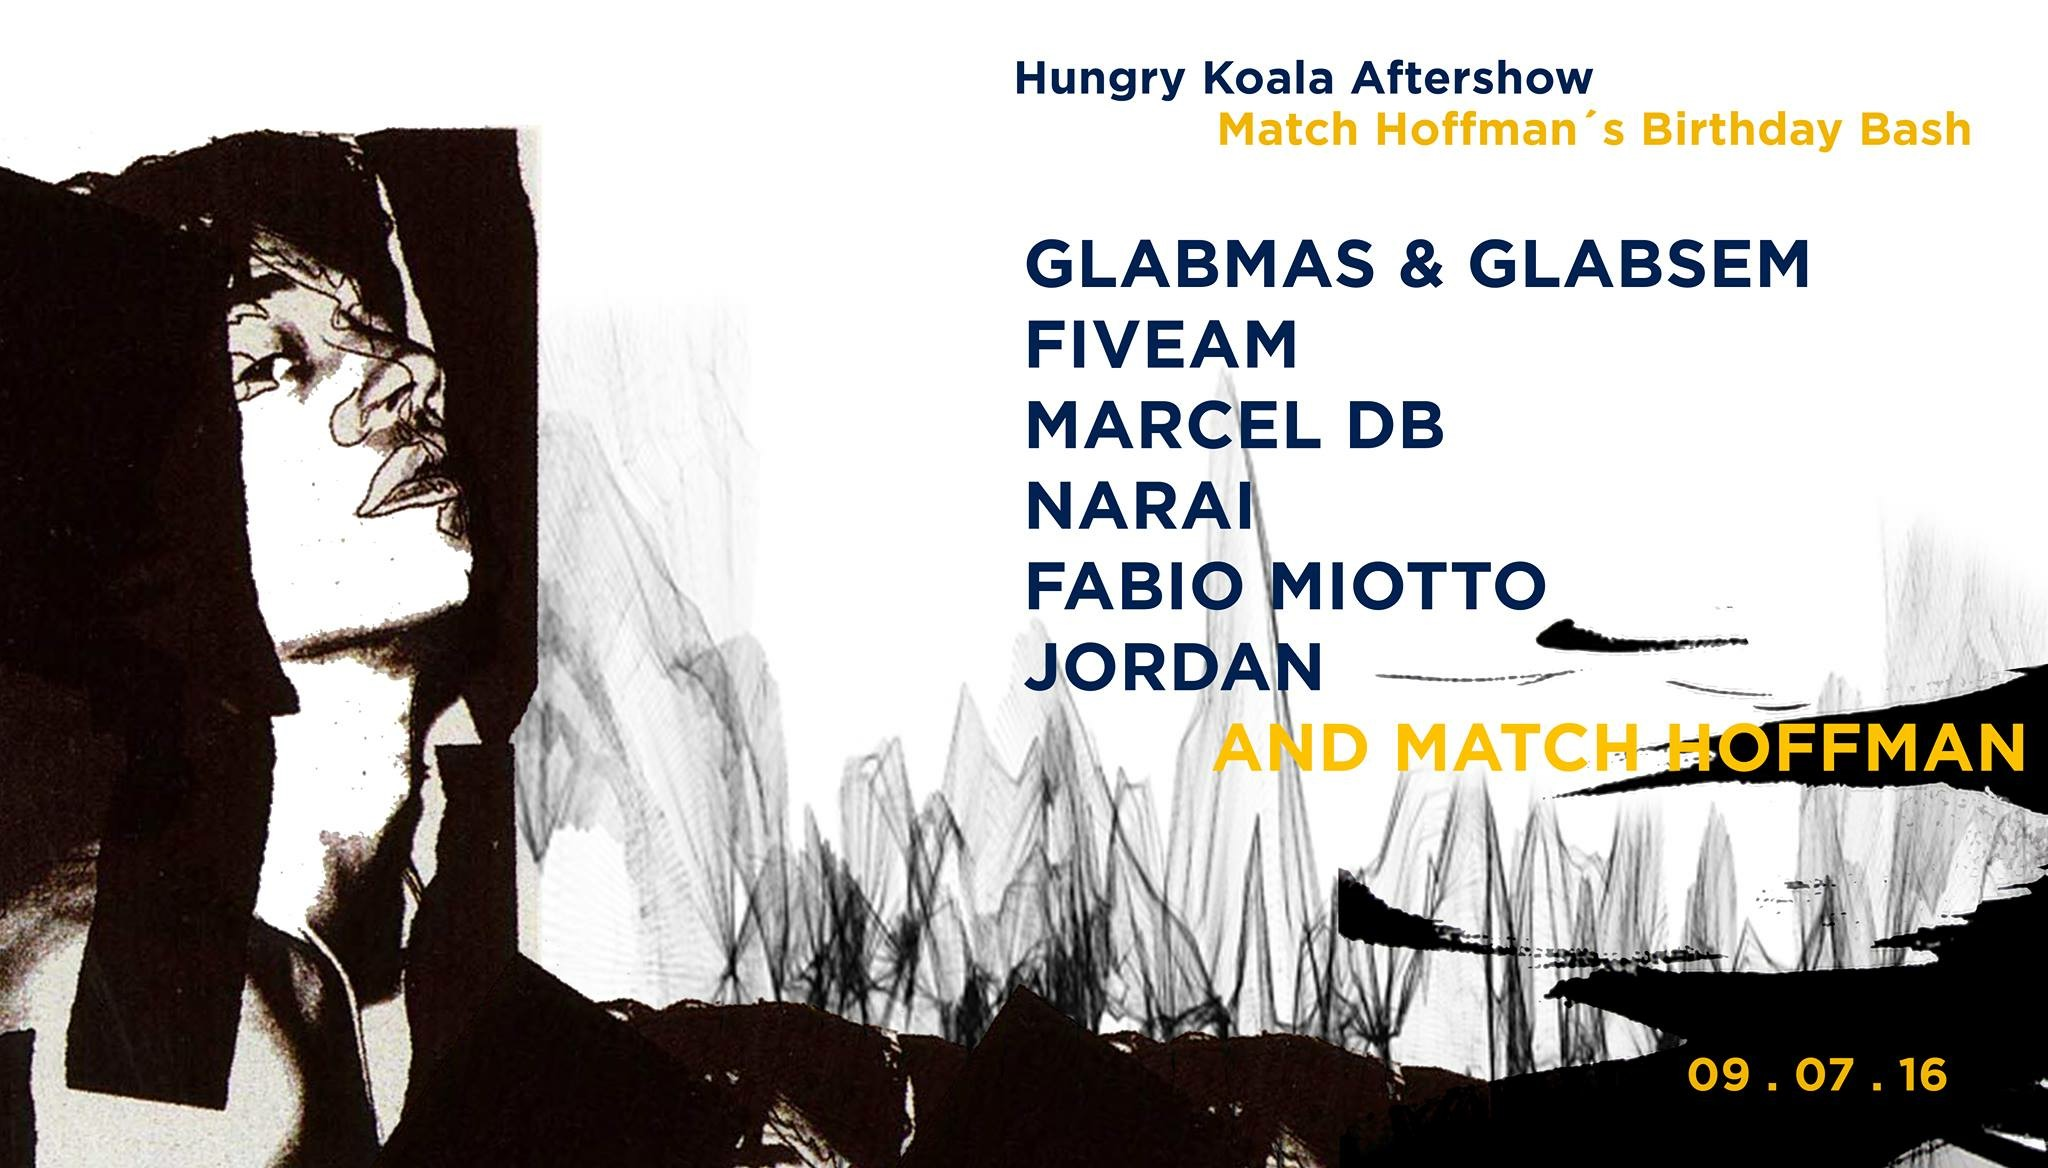 Hungry Koala Aftershow + Match Hoffman s Birthday Bash mit Marcel db